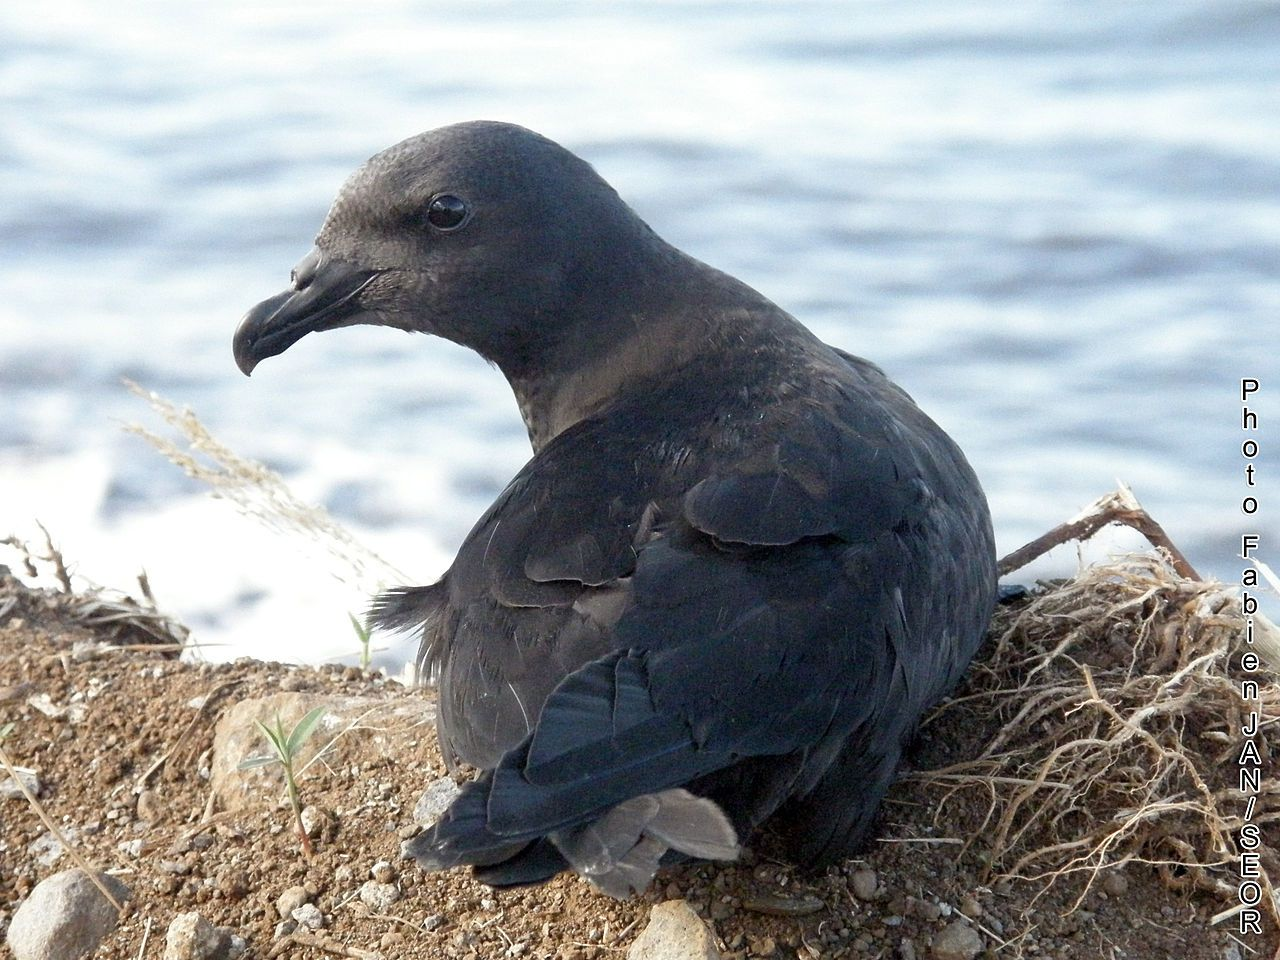 Bourbon black petrel - photo Fabien JAN -SEOR / FabKacau / CC BY-SA 3.0